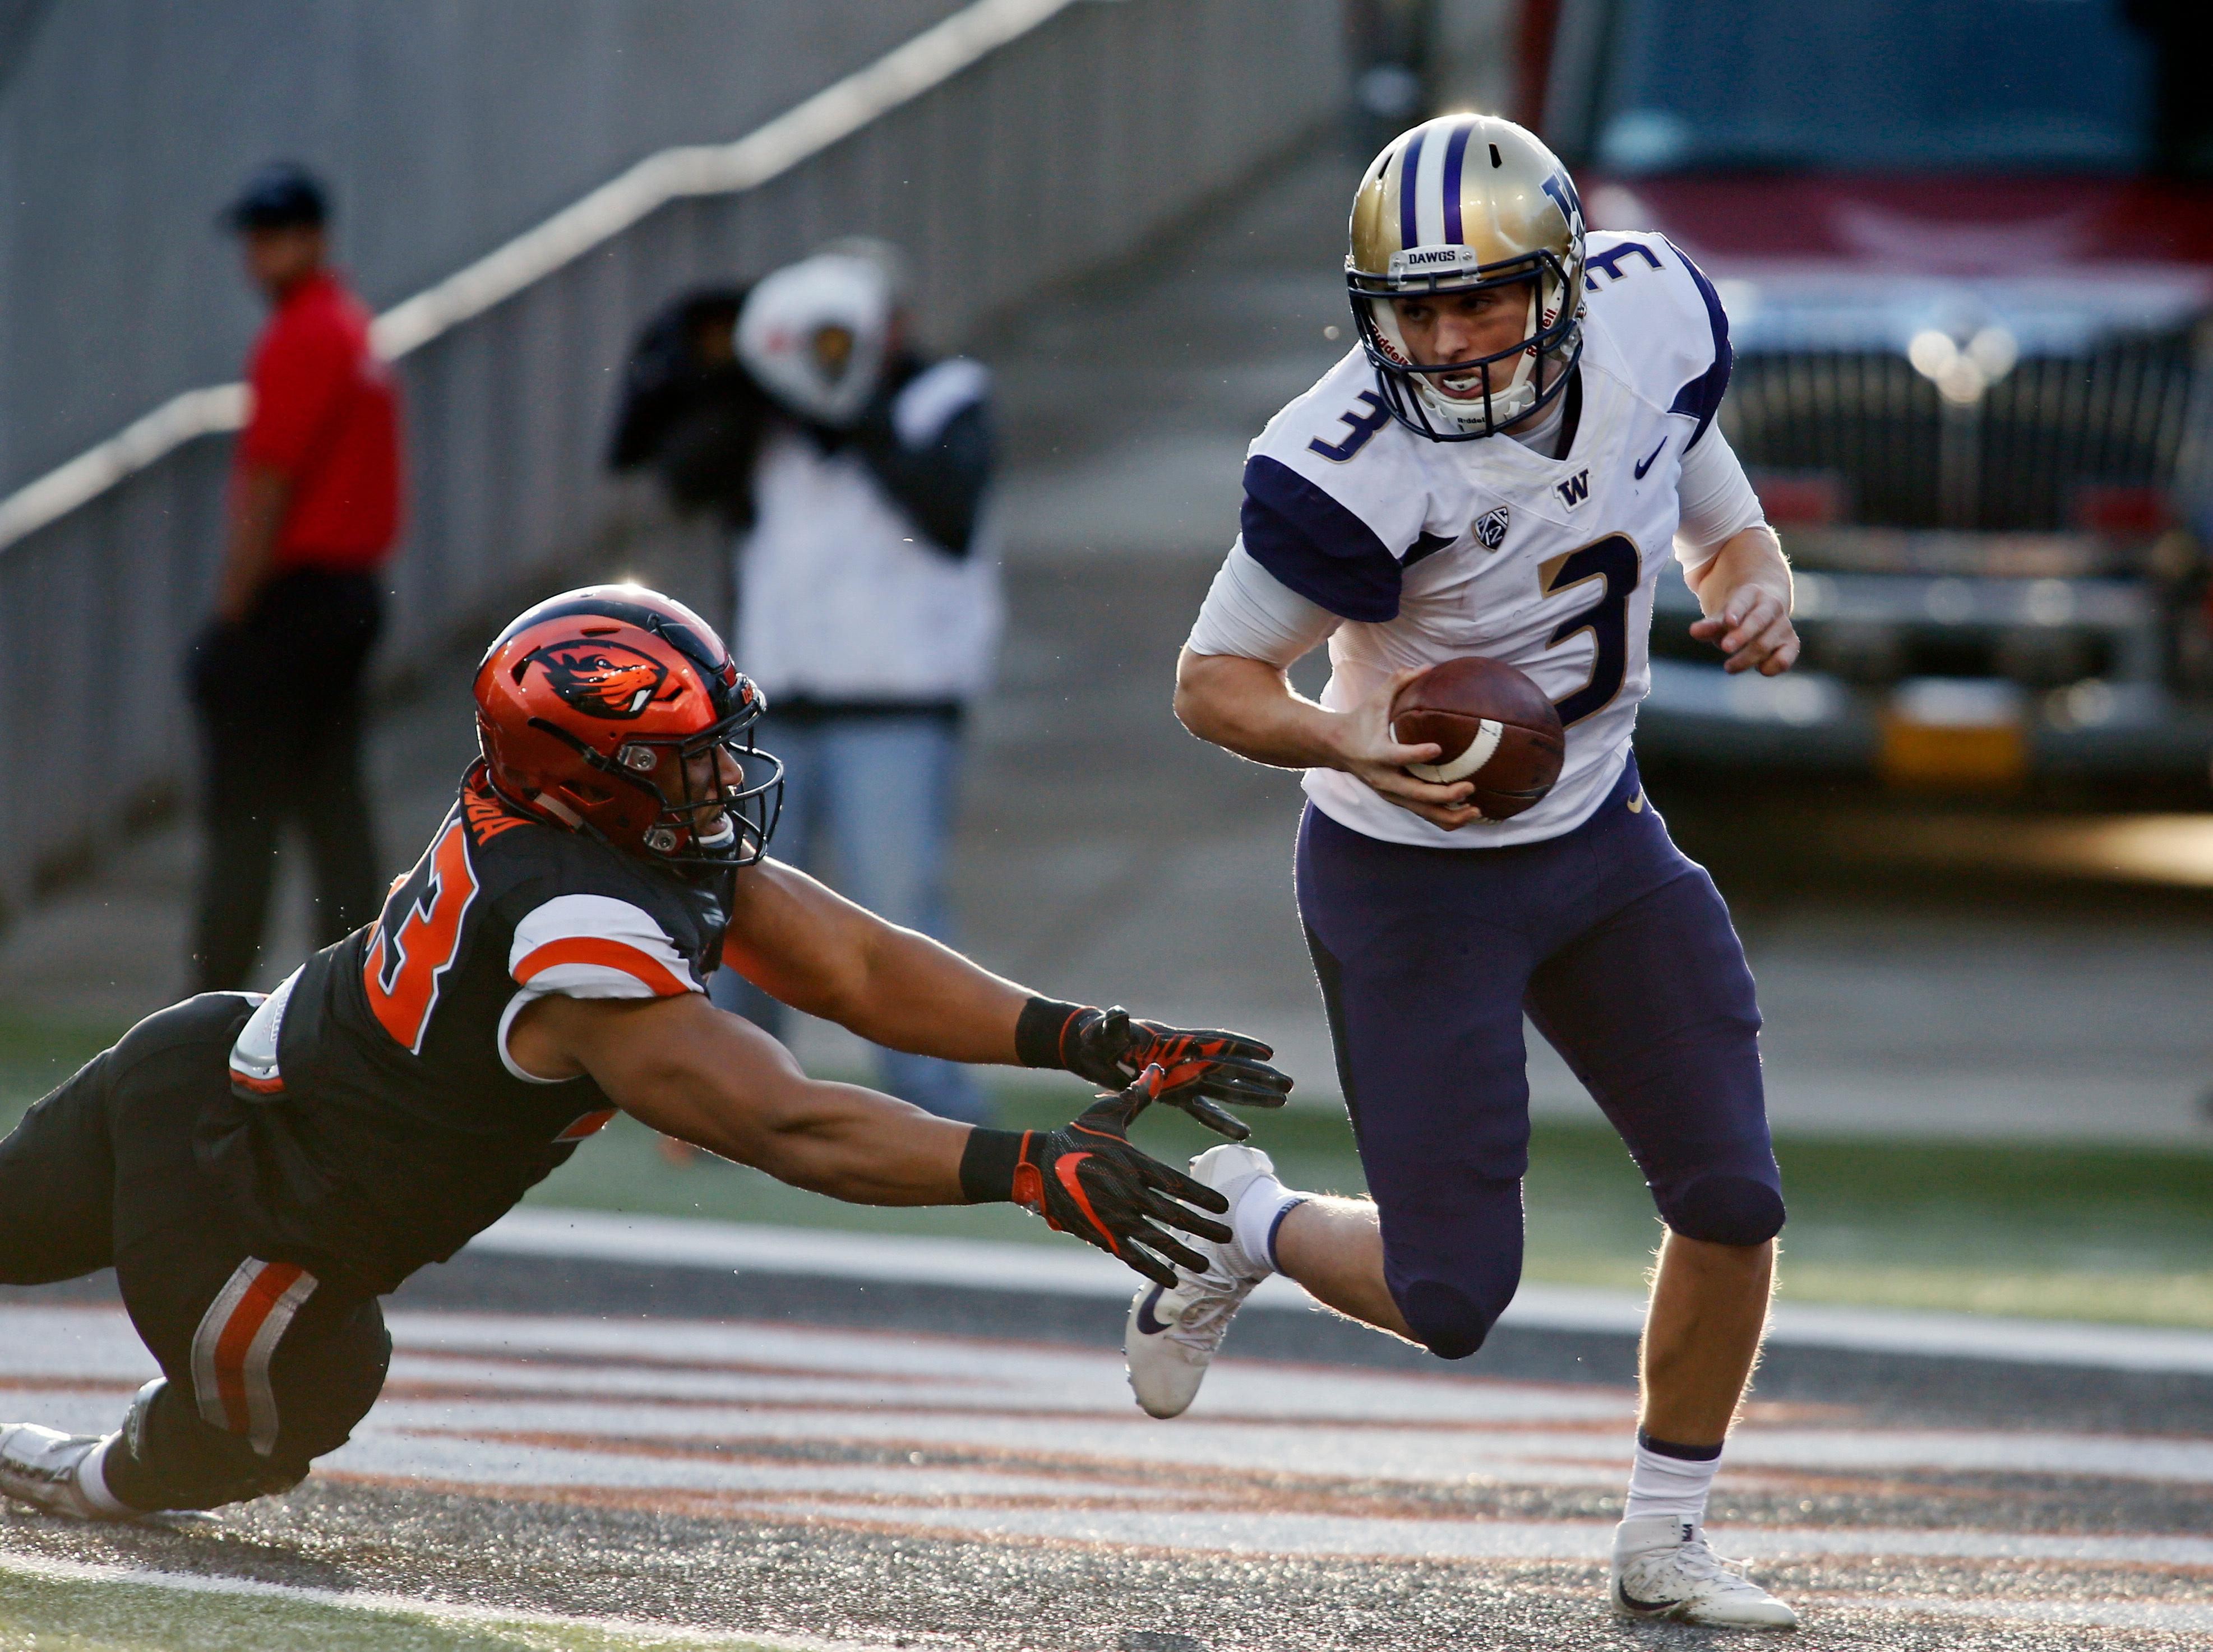 Washington quarterback Jake Browning (3) escapes the tackle attempt by Oregon State's Titus Failauga in the first half of an NCAA college football game, in Corvallis, Ore., Saturday, Sept. 30, 2017. (AP Photo/Timothy J. Gonzalez)